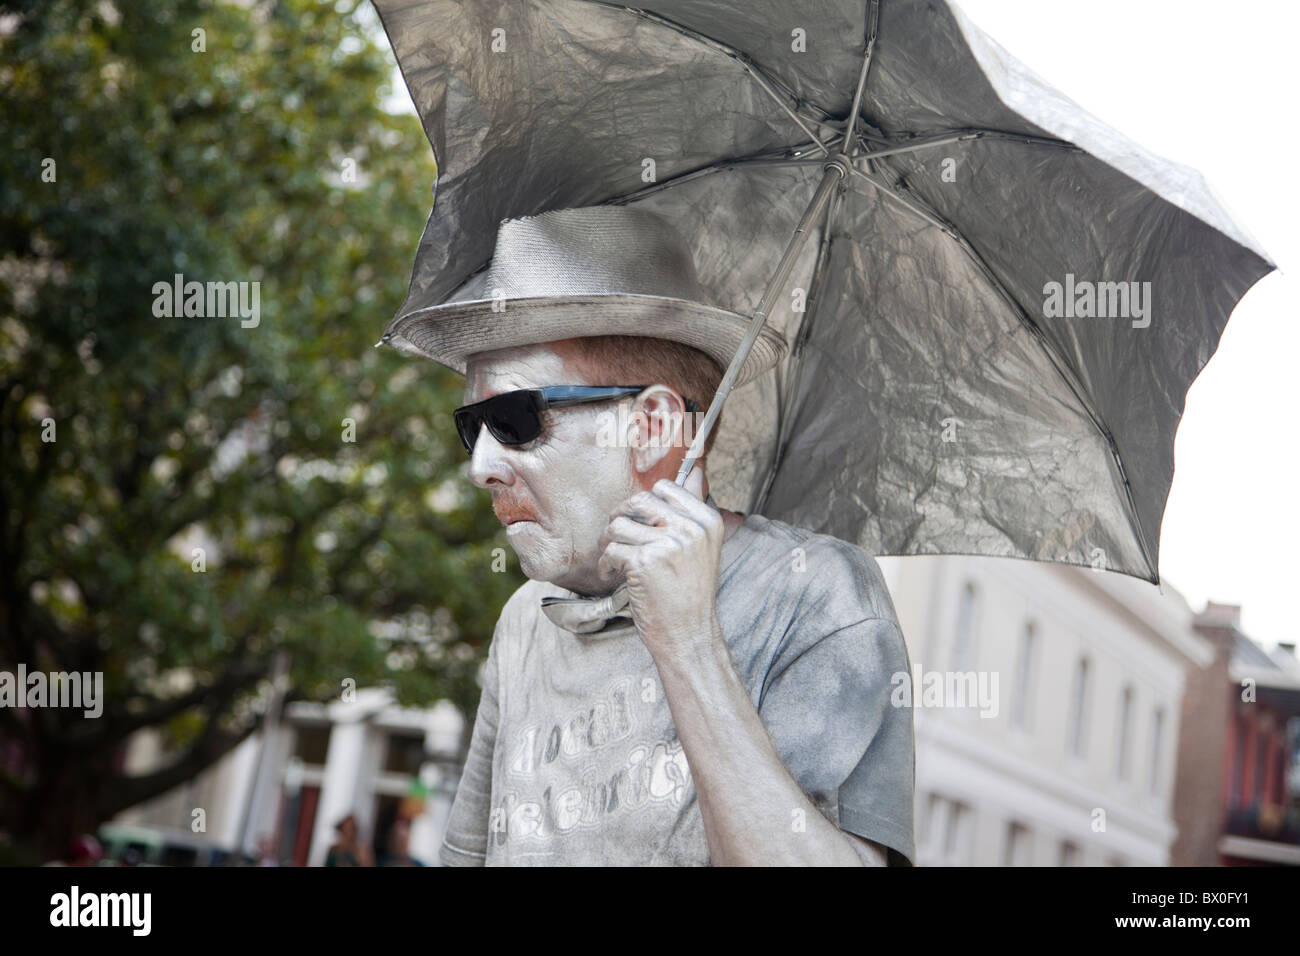 A man, painted in silver and standing still as a statue, performs for tips in New Orleans, Louisiana. - Stock Image